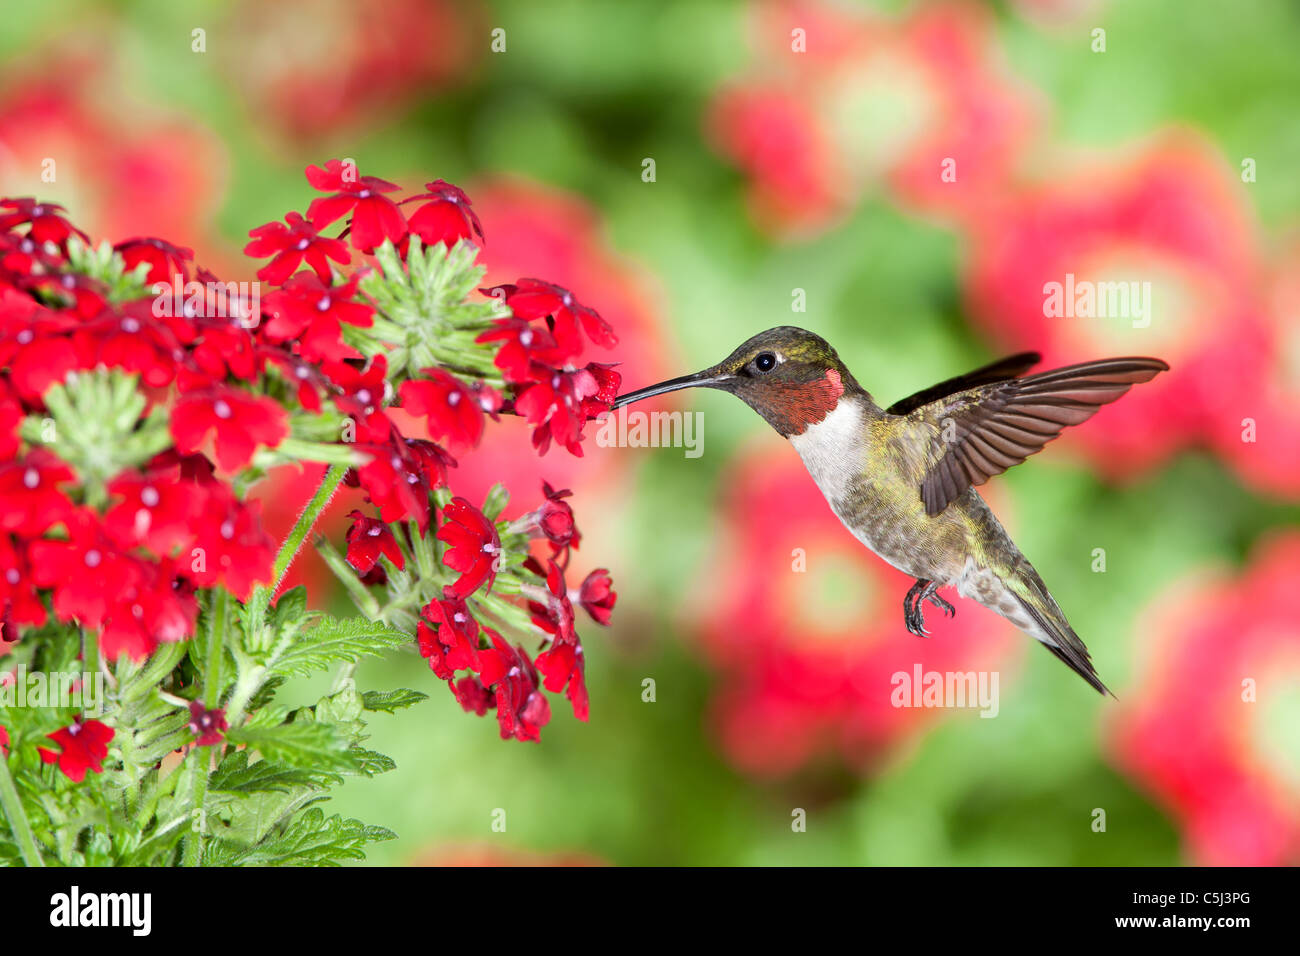 Ruby throated Hummingbird seeking nectar from Verbena Flowers - Stock Image